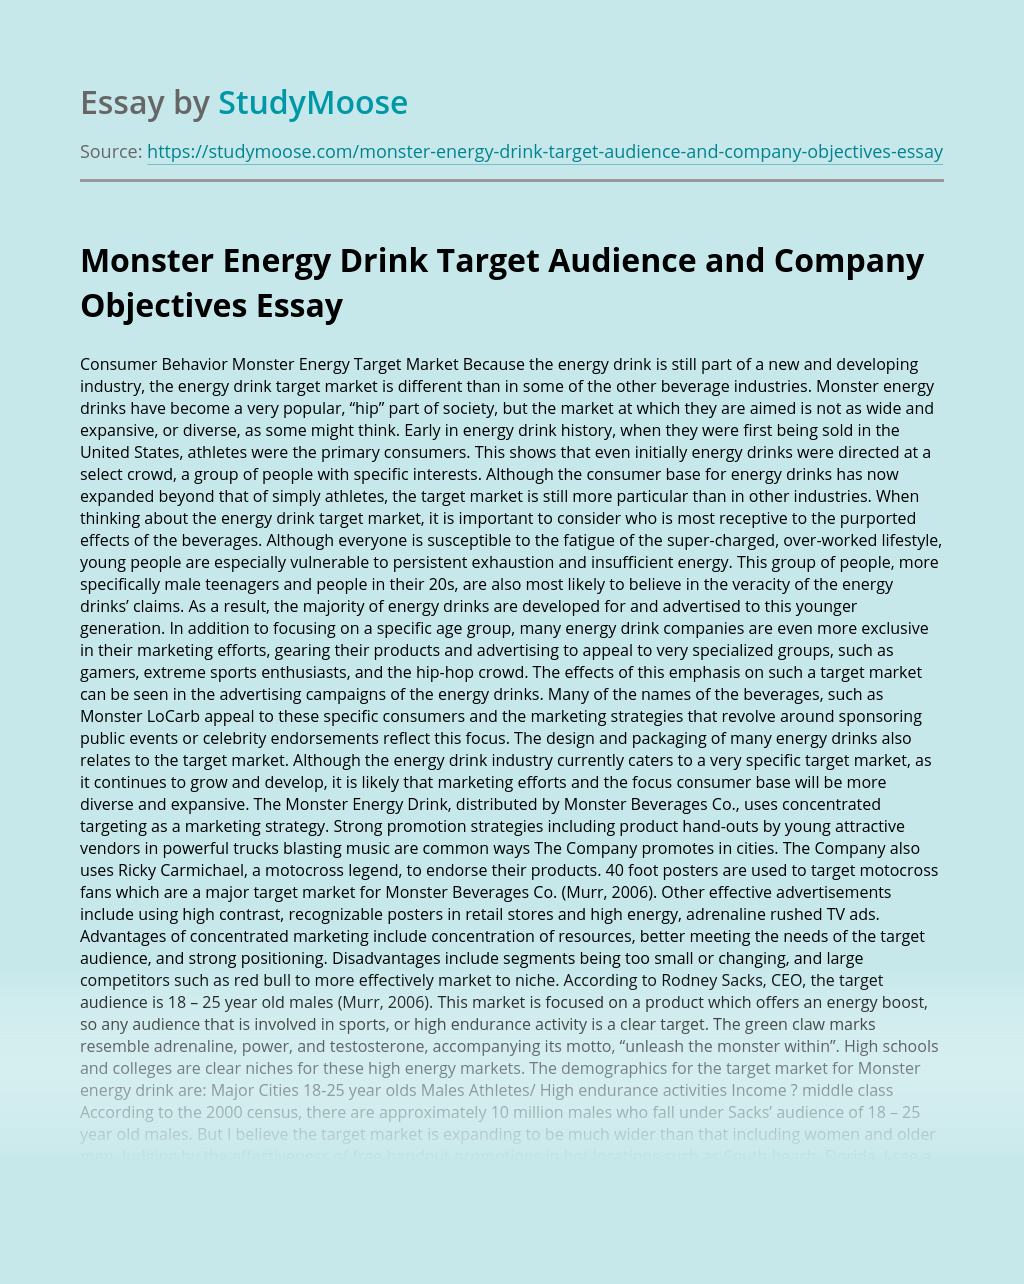 Monster Energy Drink Target Audience and Company Objectives